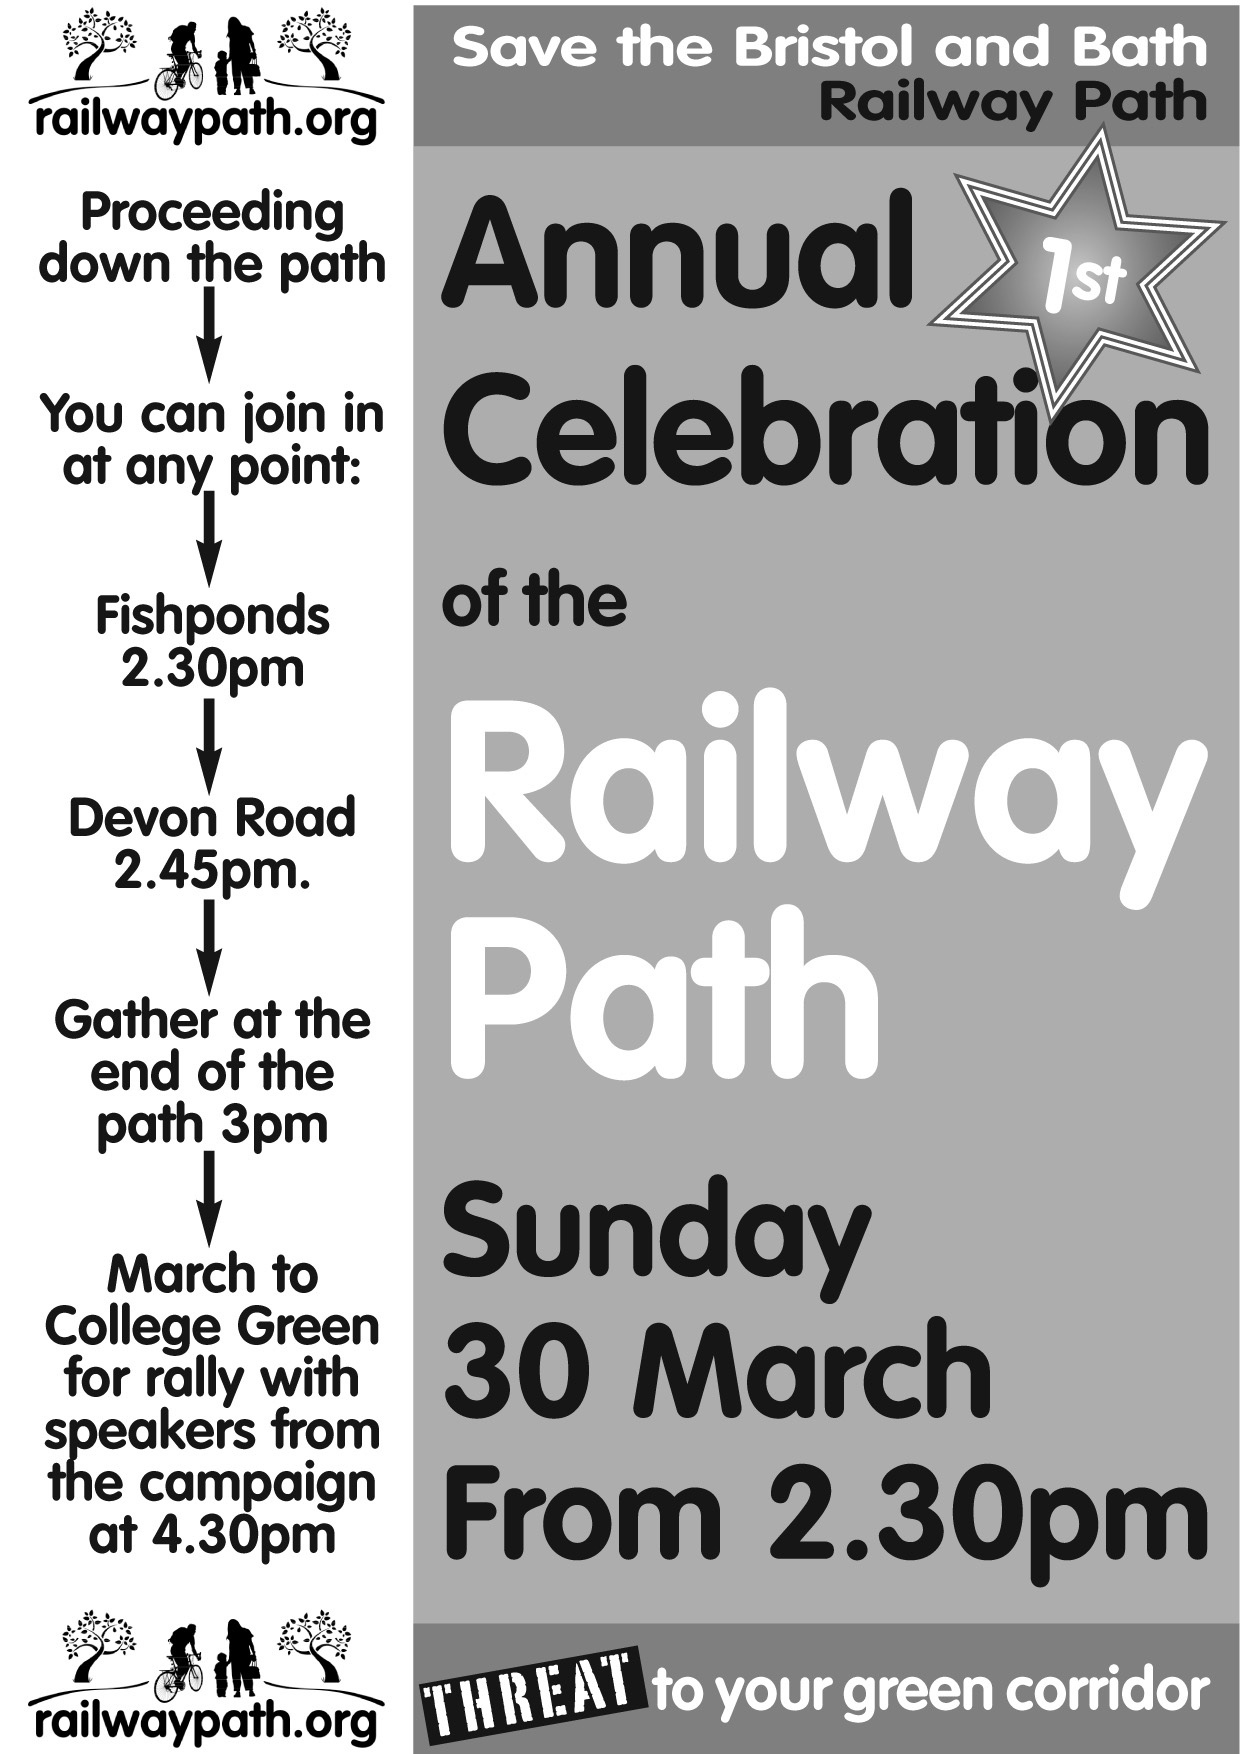 Railway Path protest leaflet